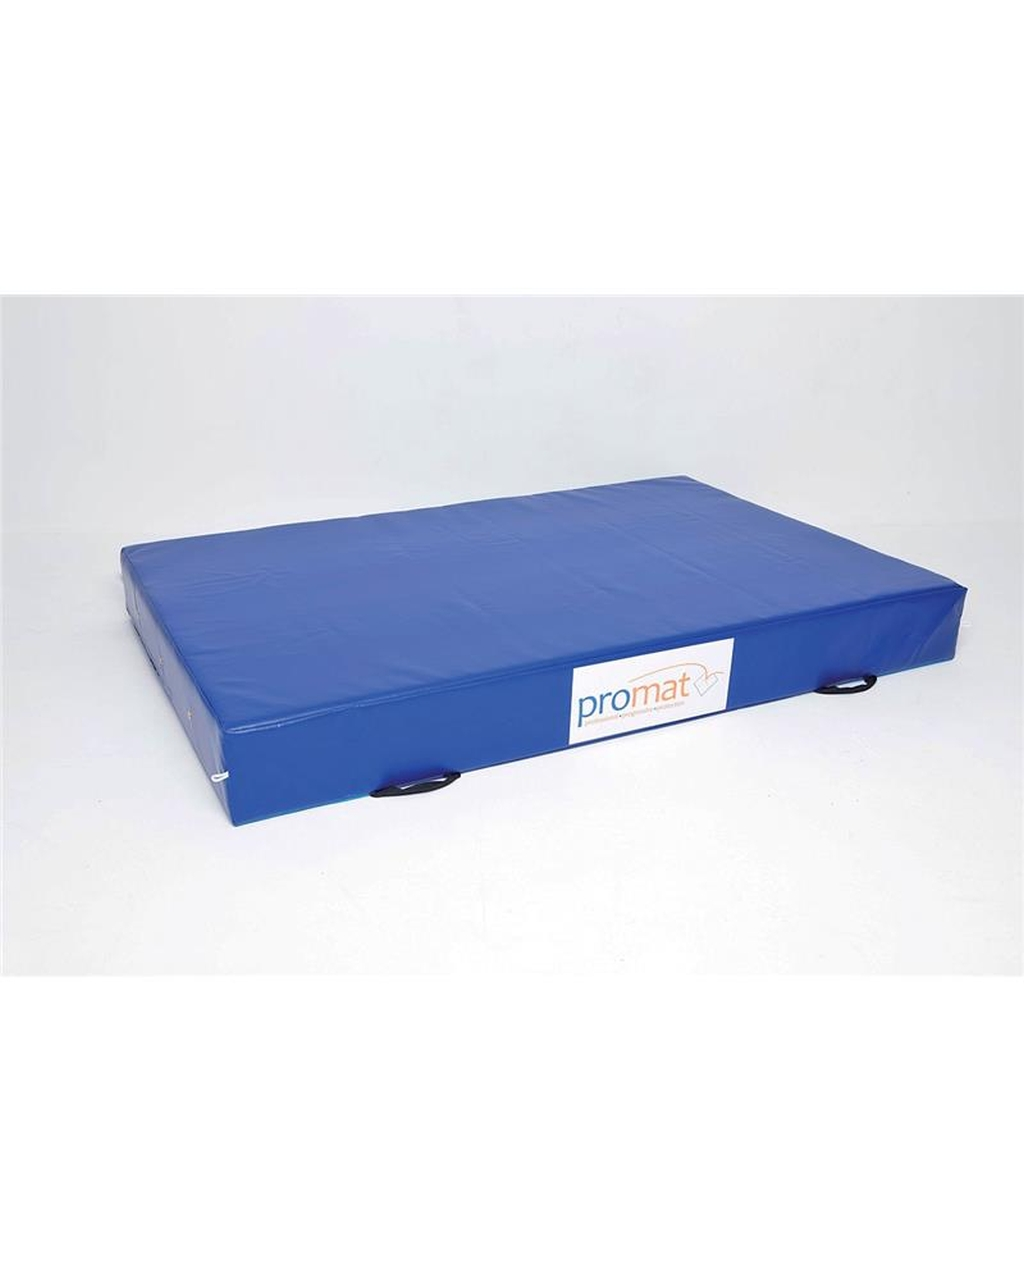 CRASH MAT 1.83M X 1.22M X 100MM